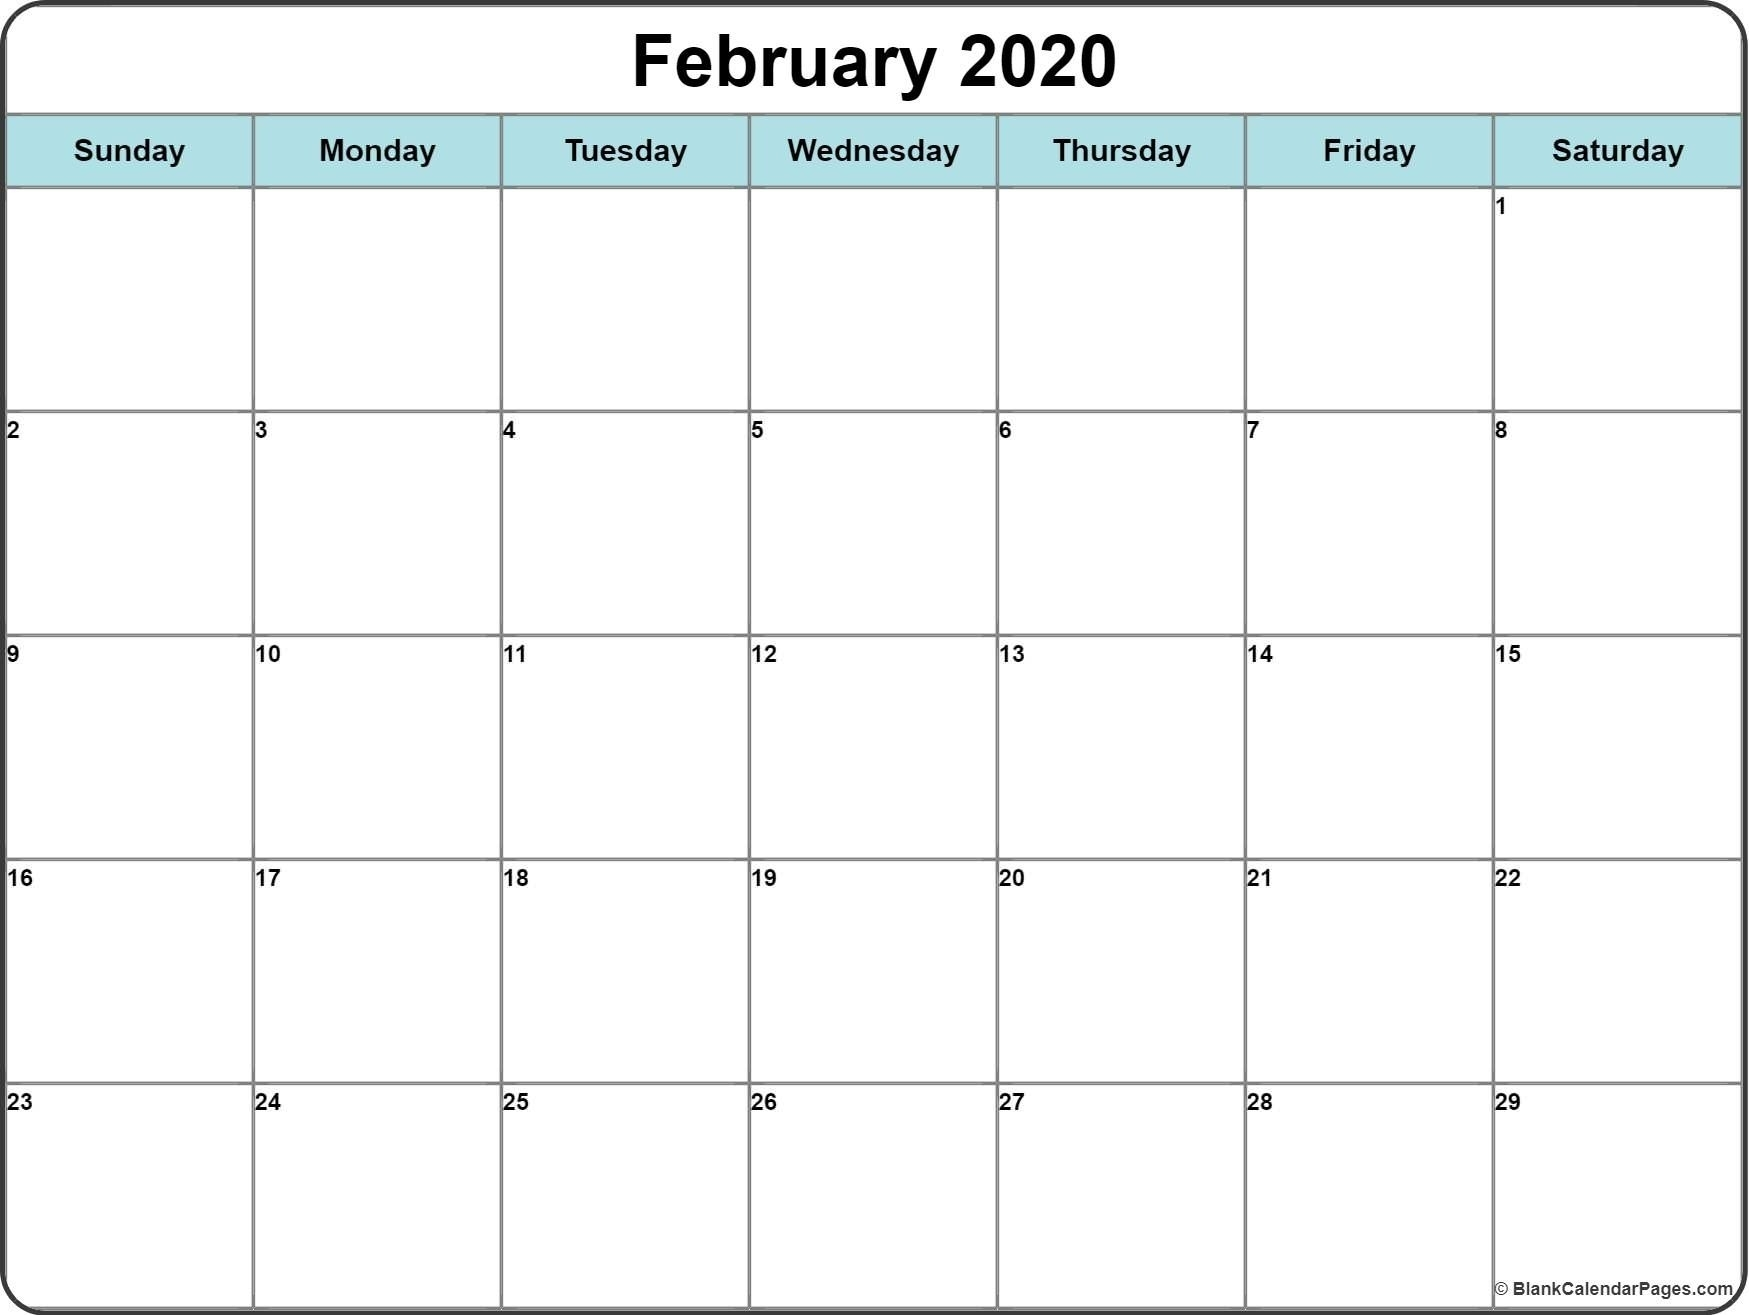 2020 Calendar With Space To Write In 2020 | Calendar intended for 2020 Calendar Free Printable With Space To Write